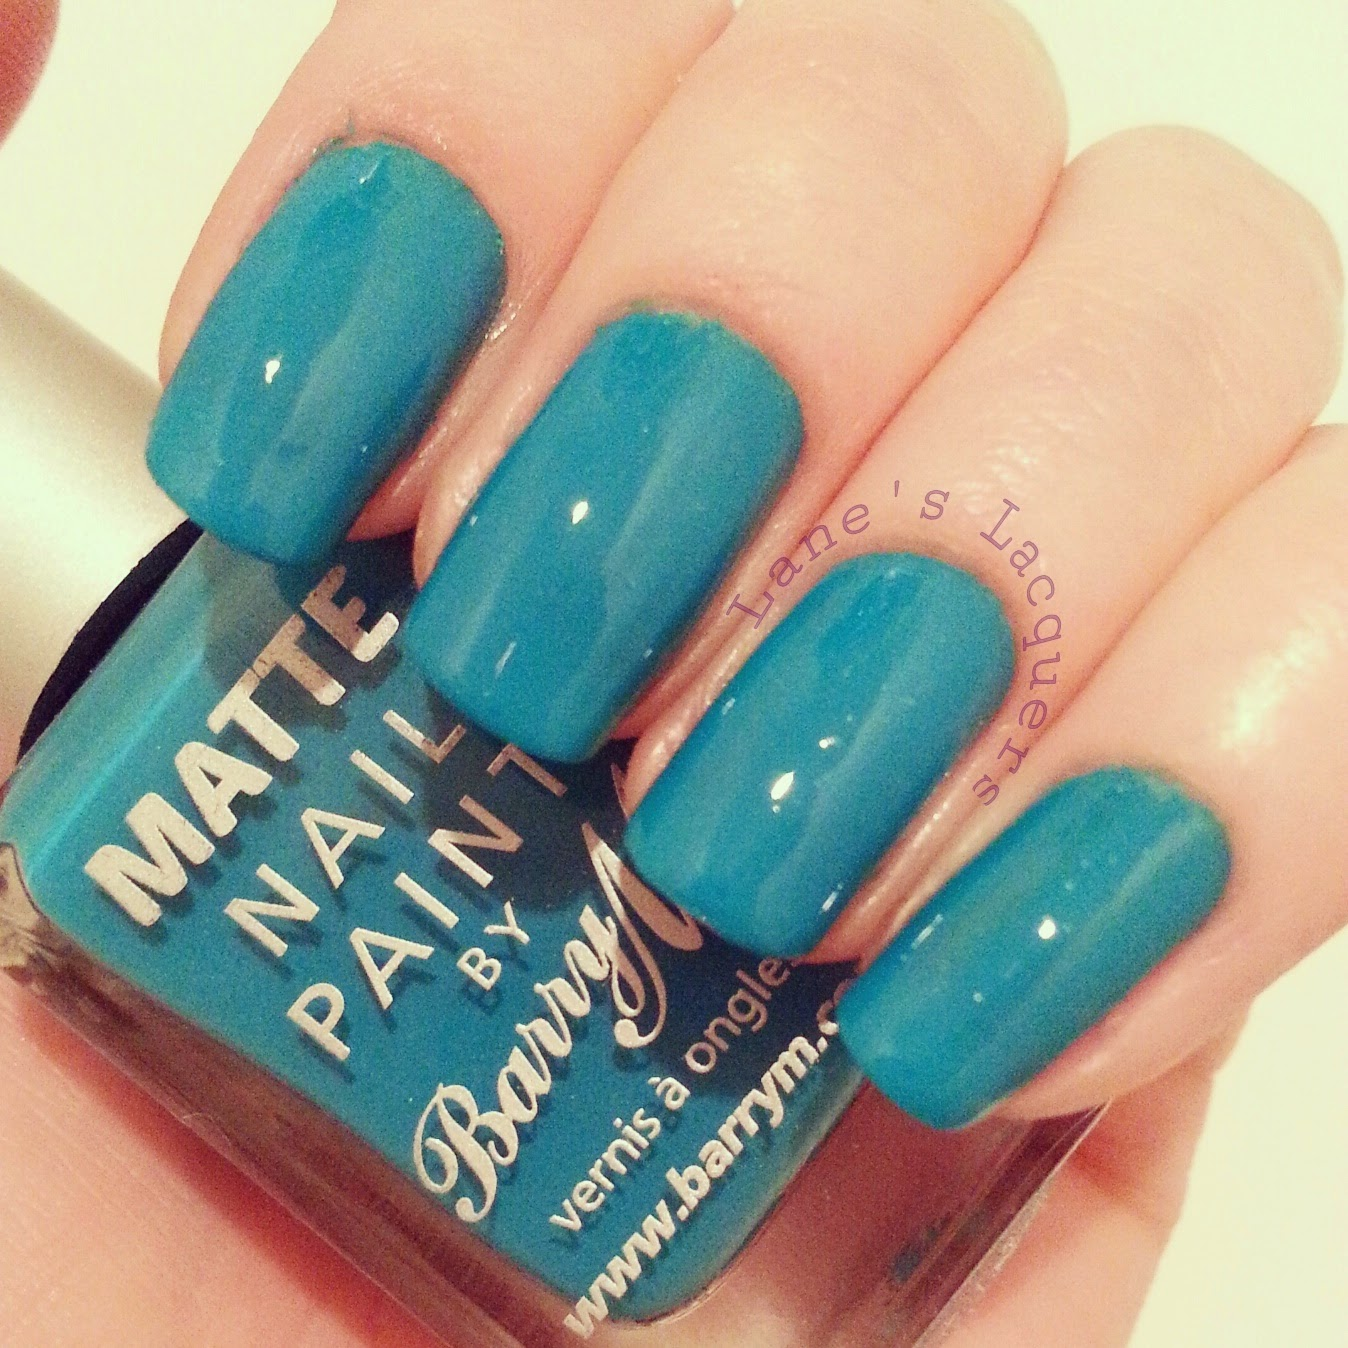 barry-m-cancun-swatch-manicure (3)